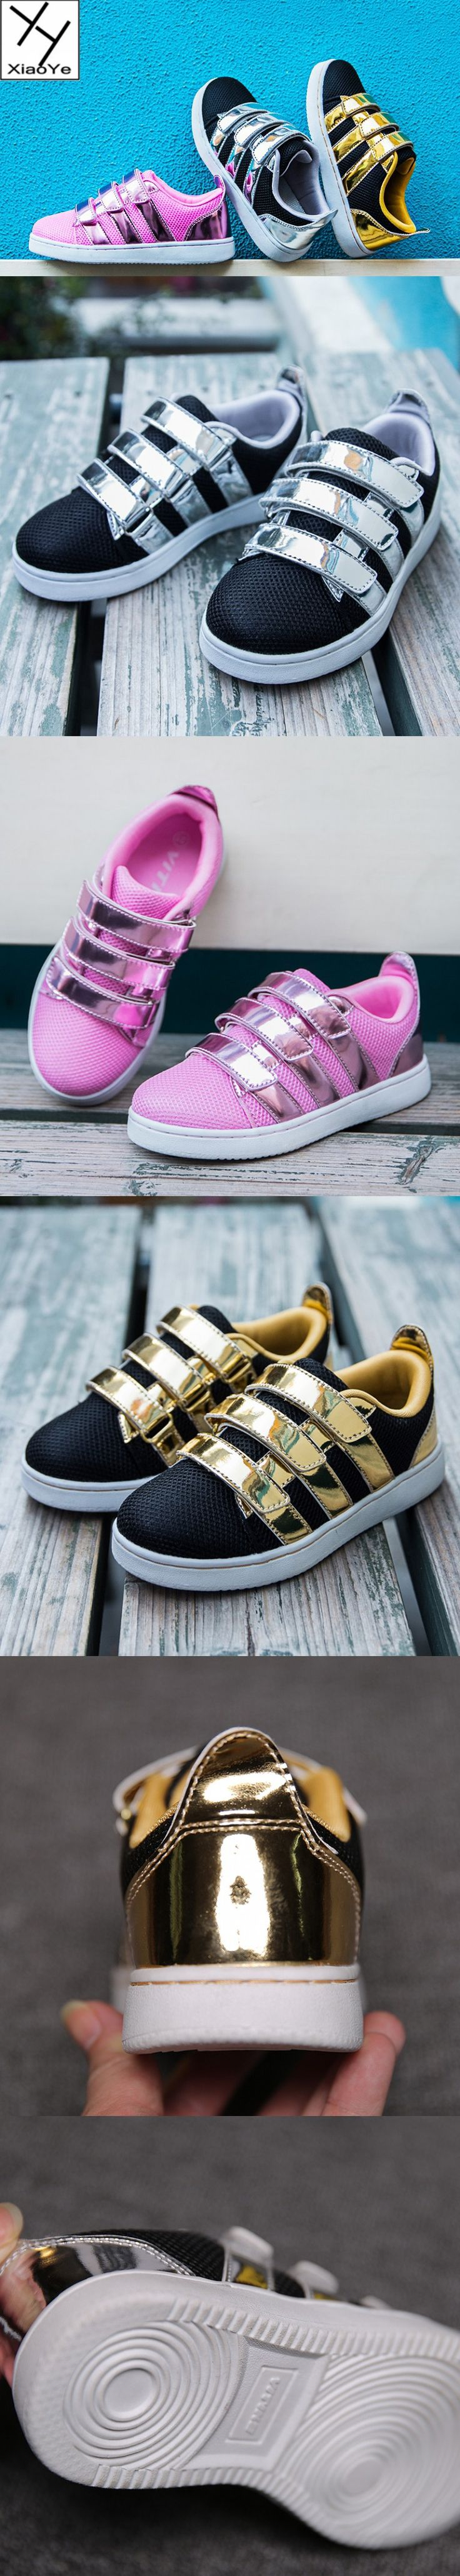 Kids Fashion Casual Mesh Sneakers Breathable Summer Skate Shoes For Boys/Girls